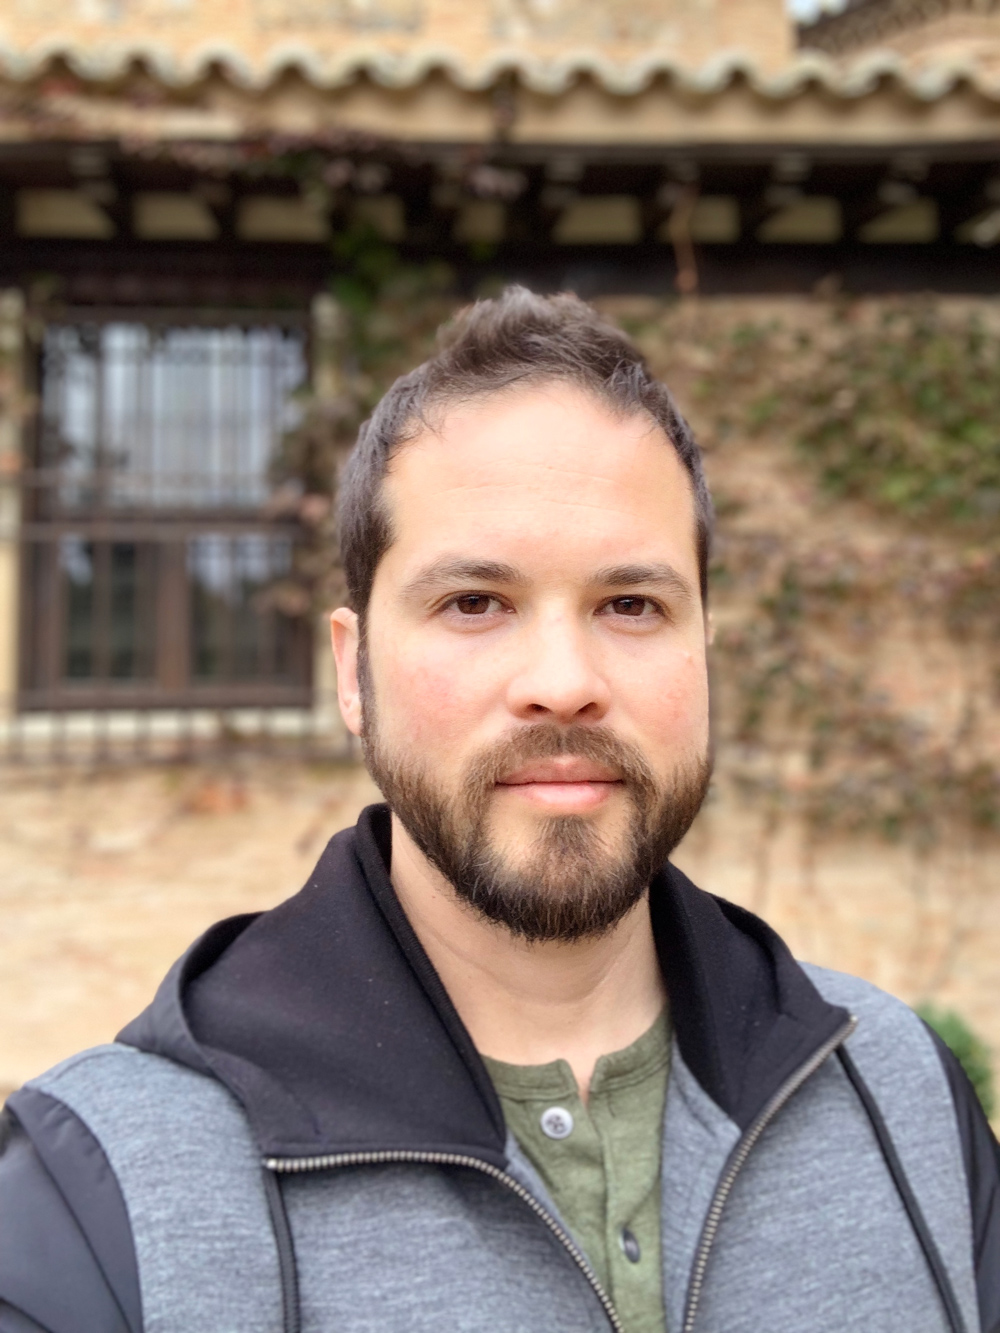 Joel Cloralt, Group Product Manager featured headshot image